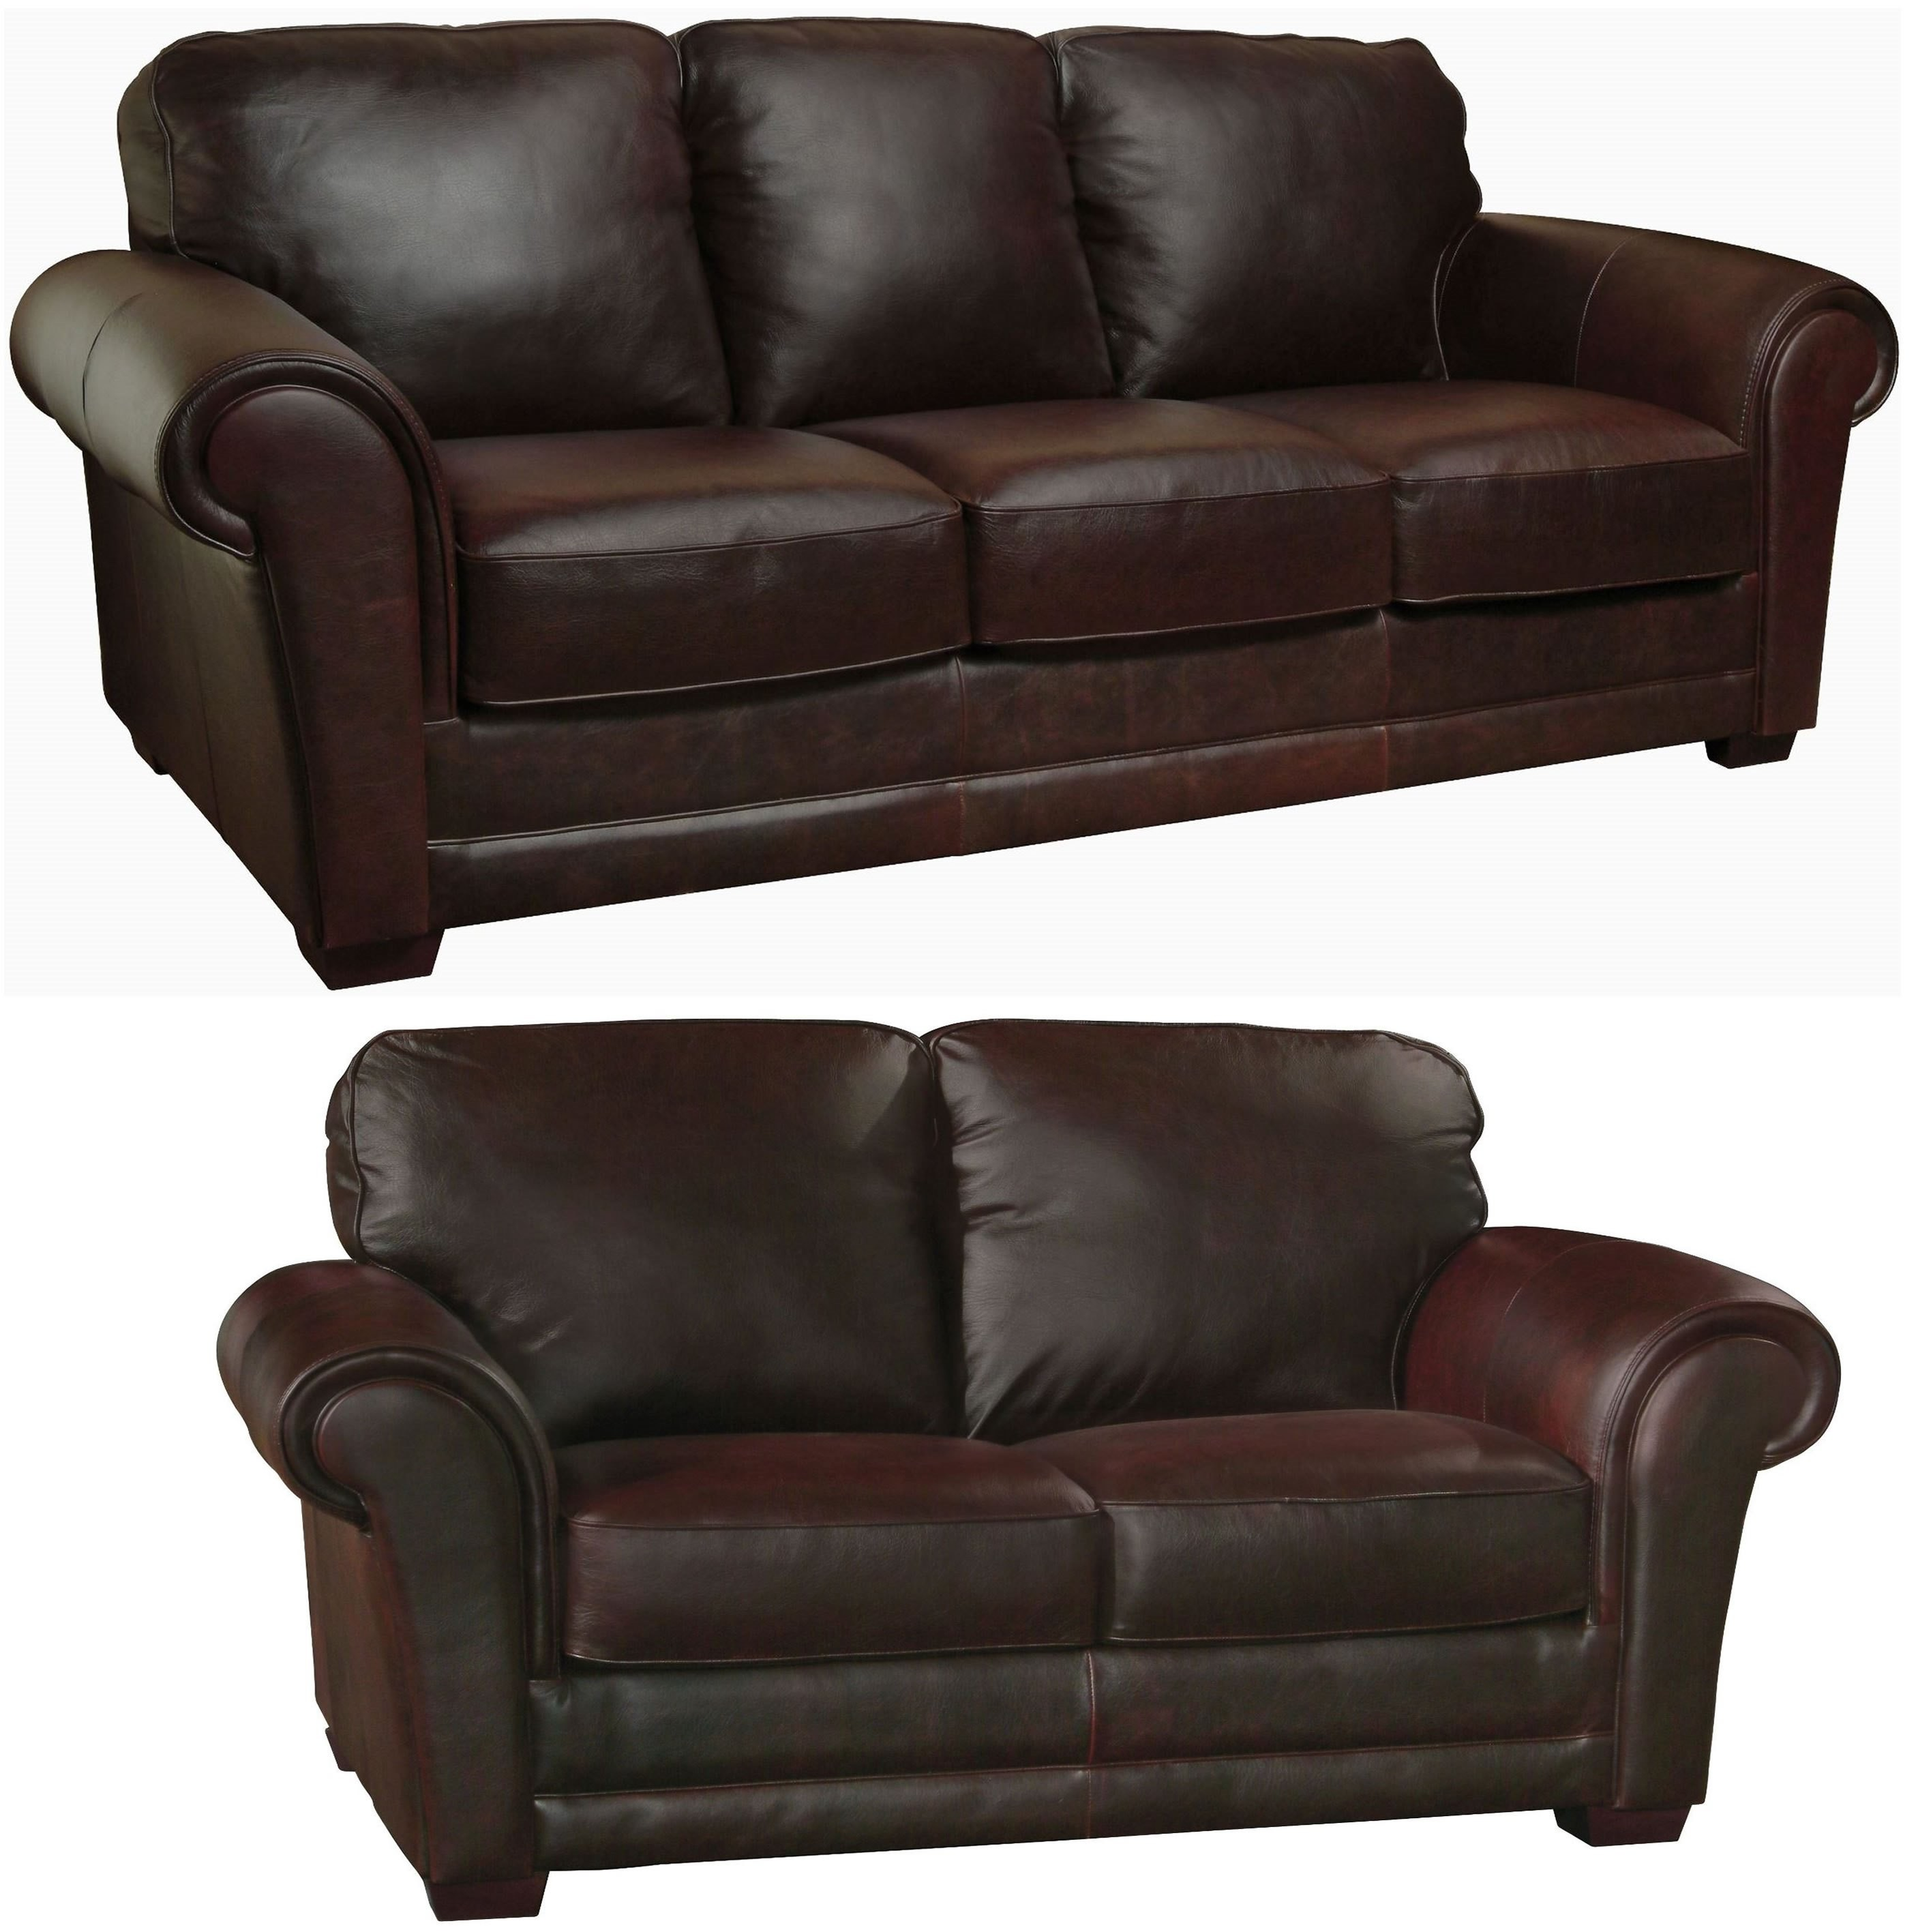 living ideas awesome with outstanding leather room set collection faux interesting